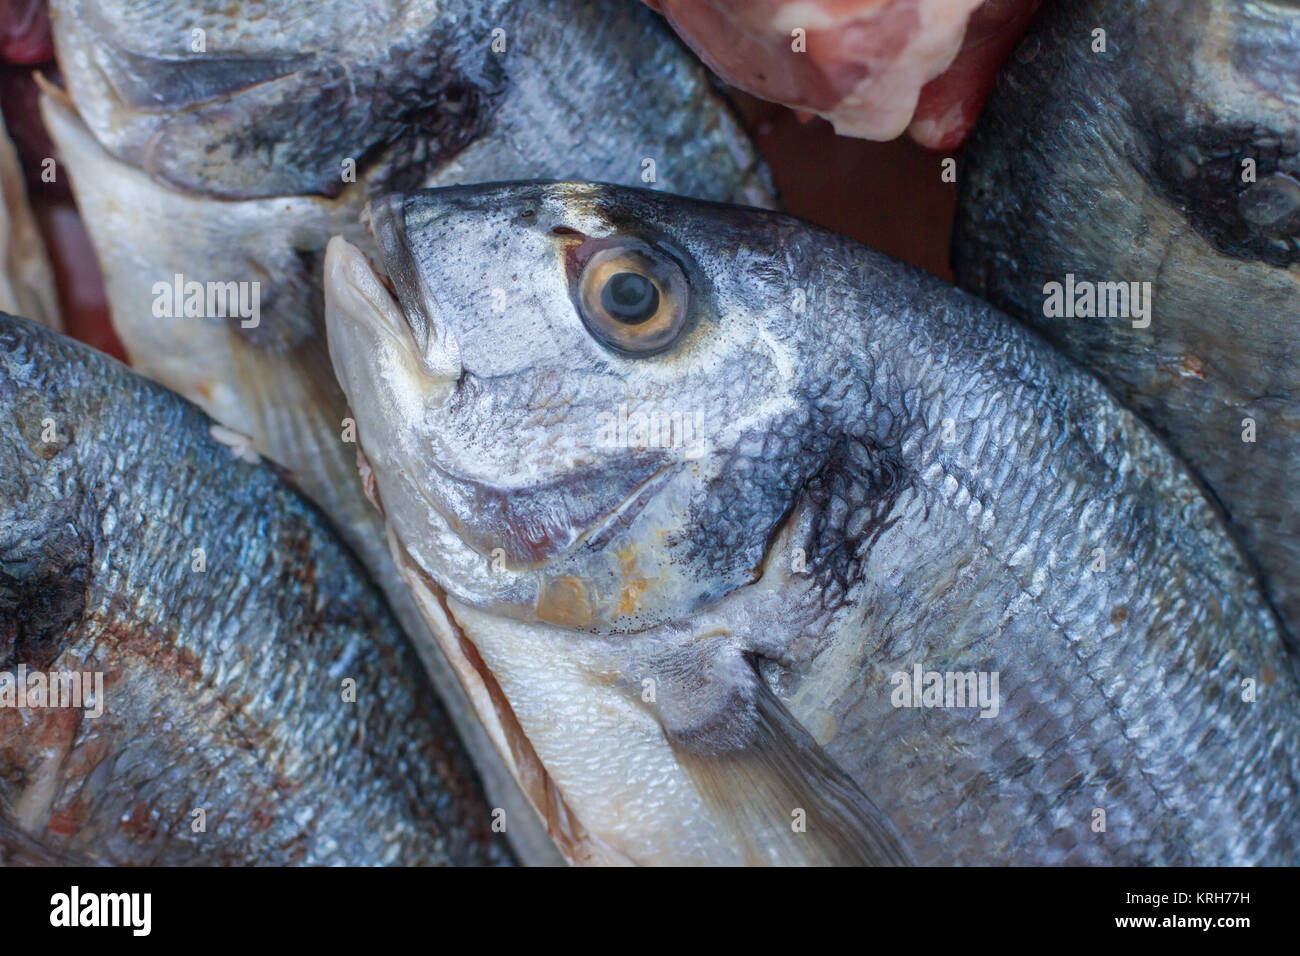 Poultry and fish stock photos poultry and fish stock for Raw fish for dogs